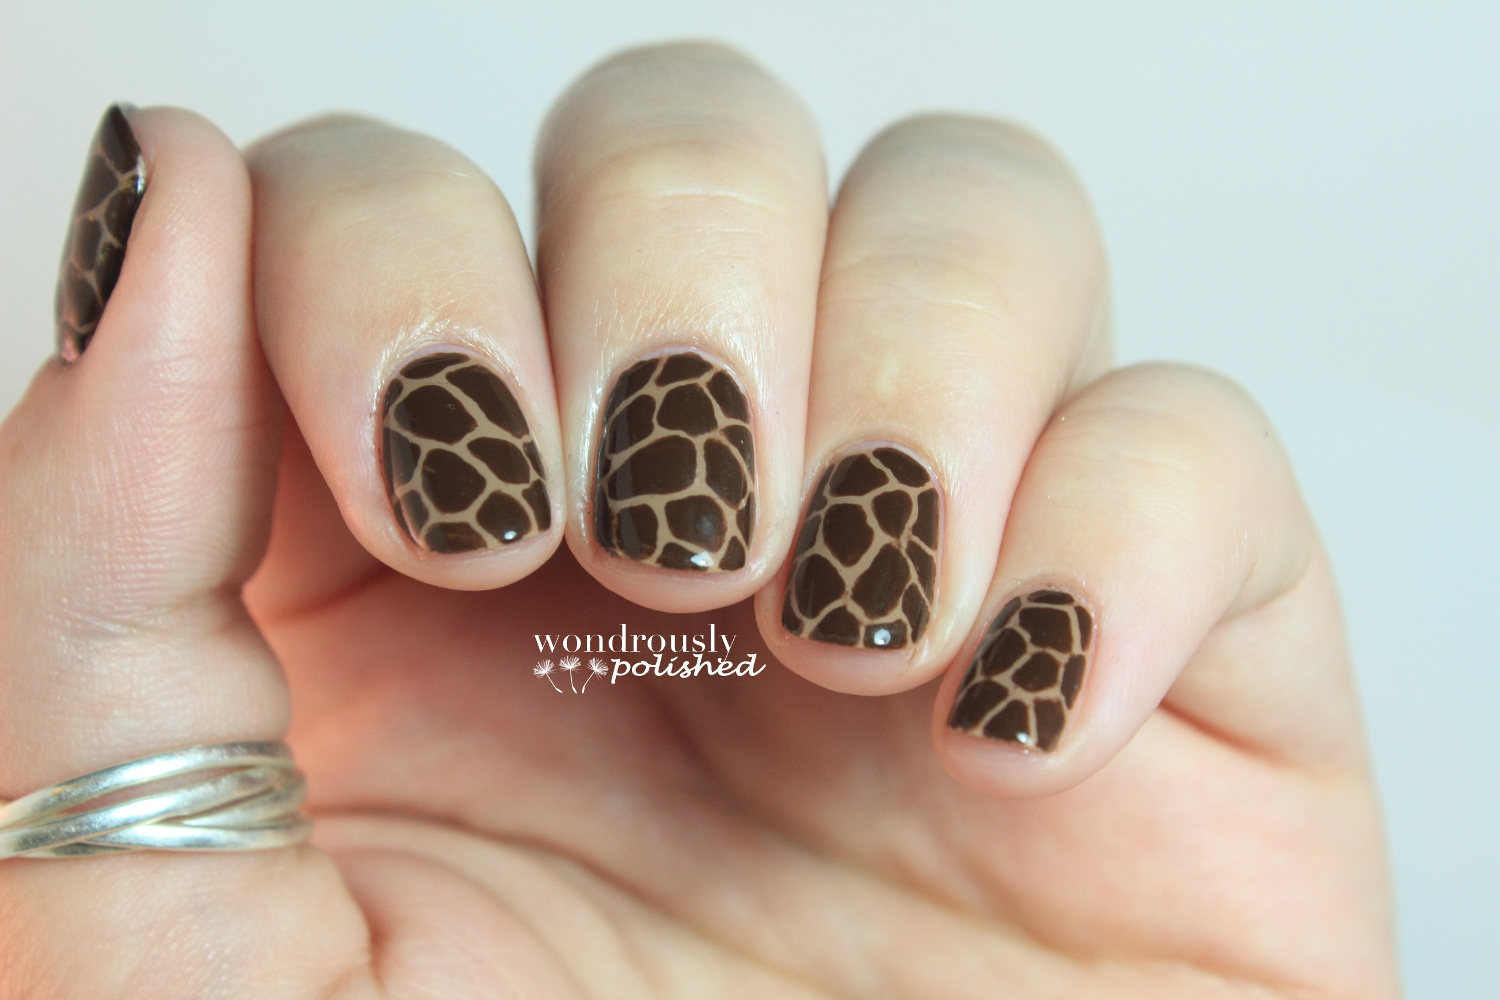 Wondrously Polished 31 Day Nail Art Challenge Day 13 Animal Print